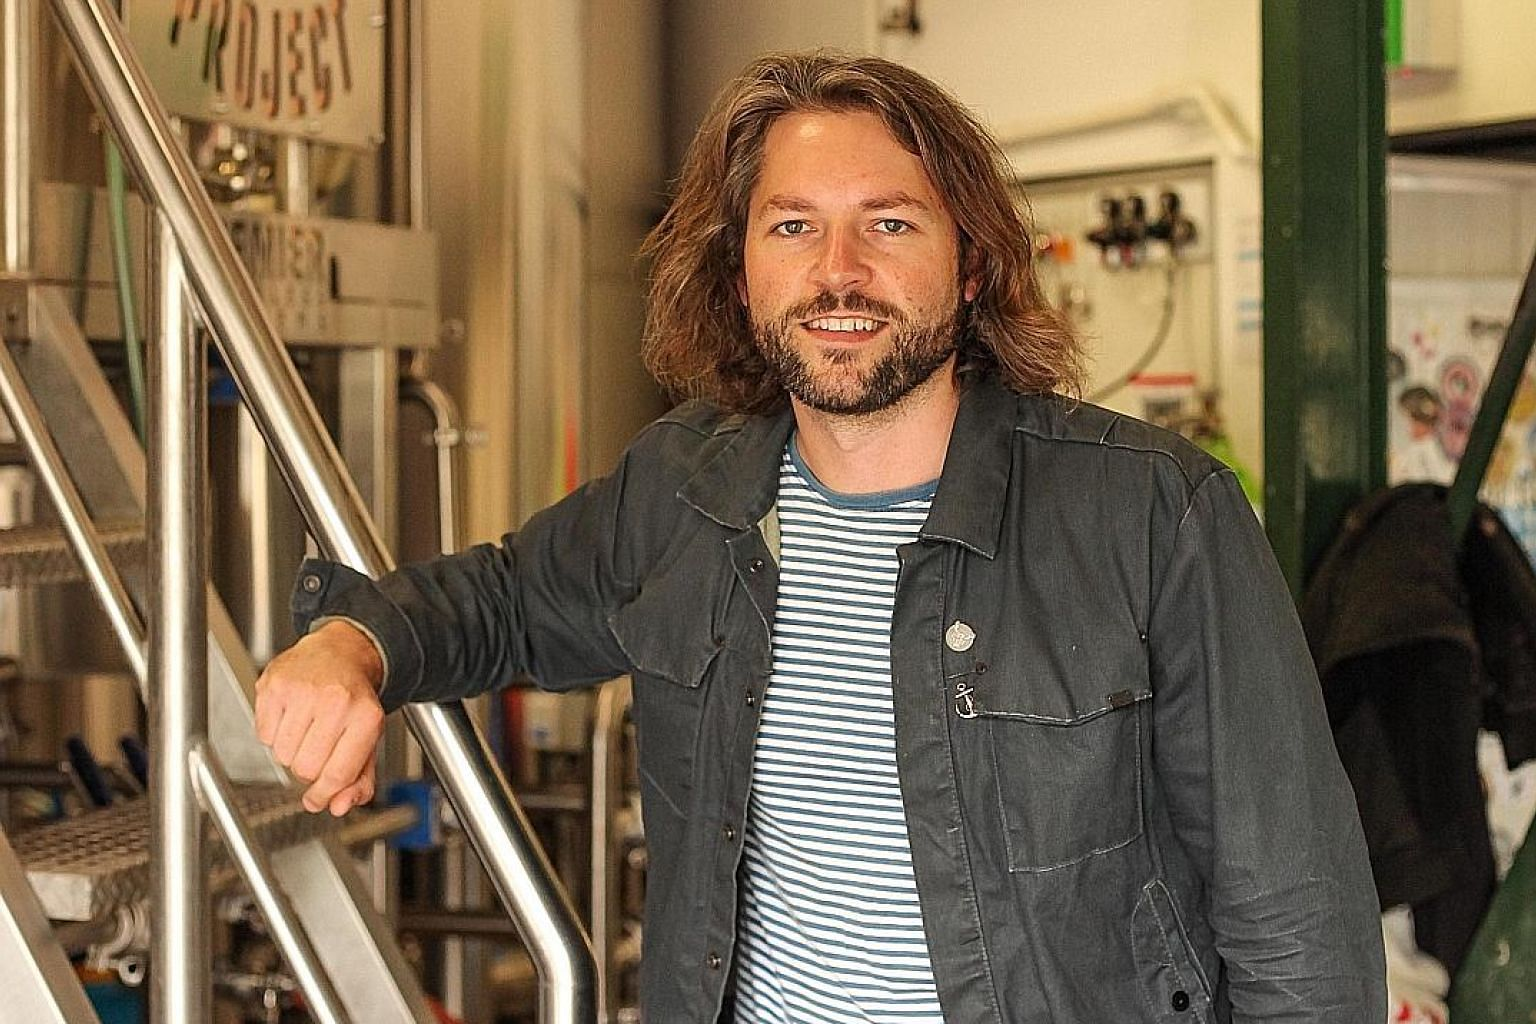 Mr Jos Ruffell, co-founder of micro-brewery Garage Project, which has up to 35 different beers listed each month.